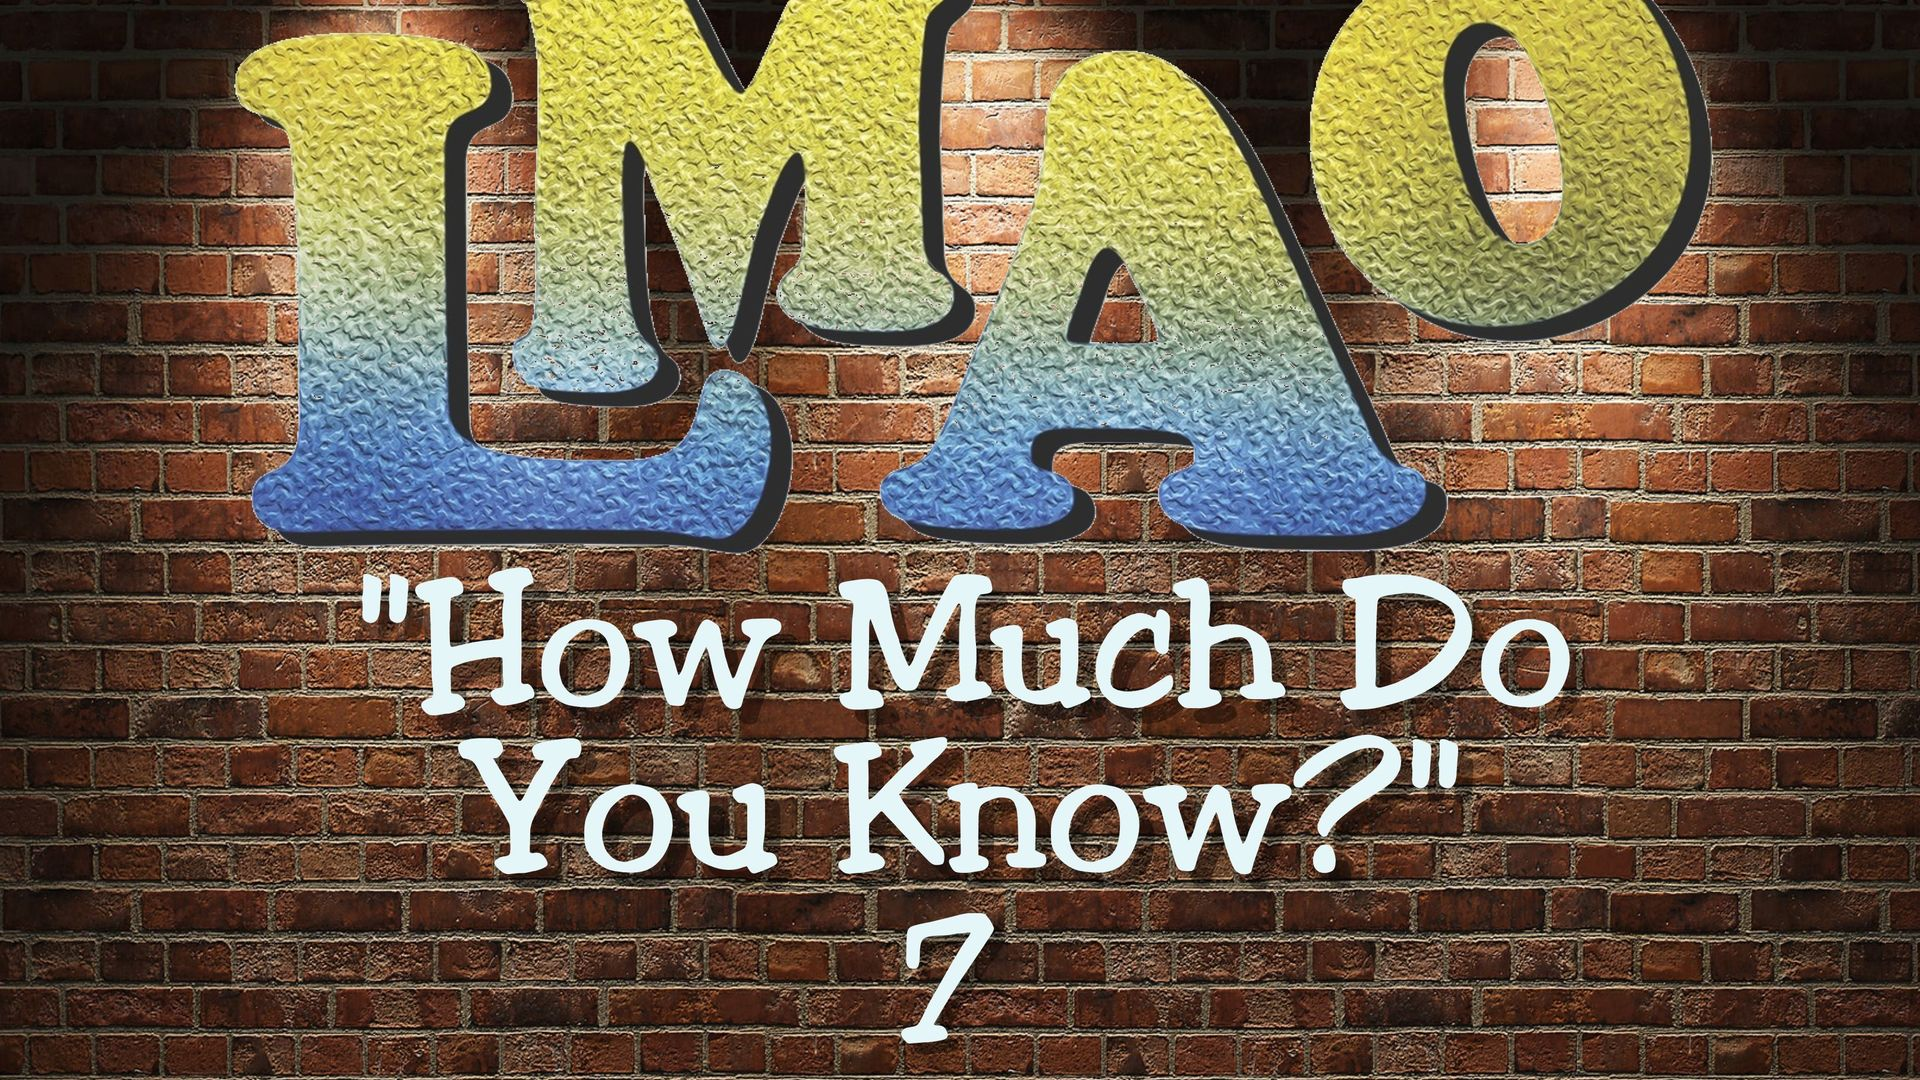 LMAO - How much do YOU know 7